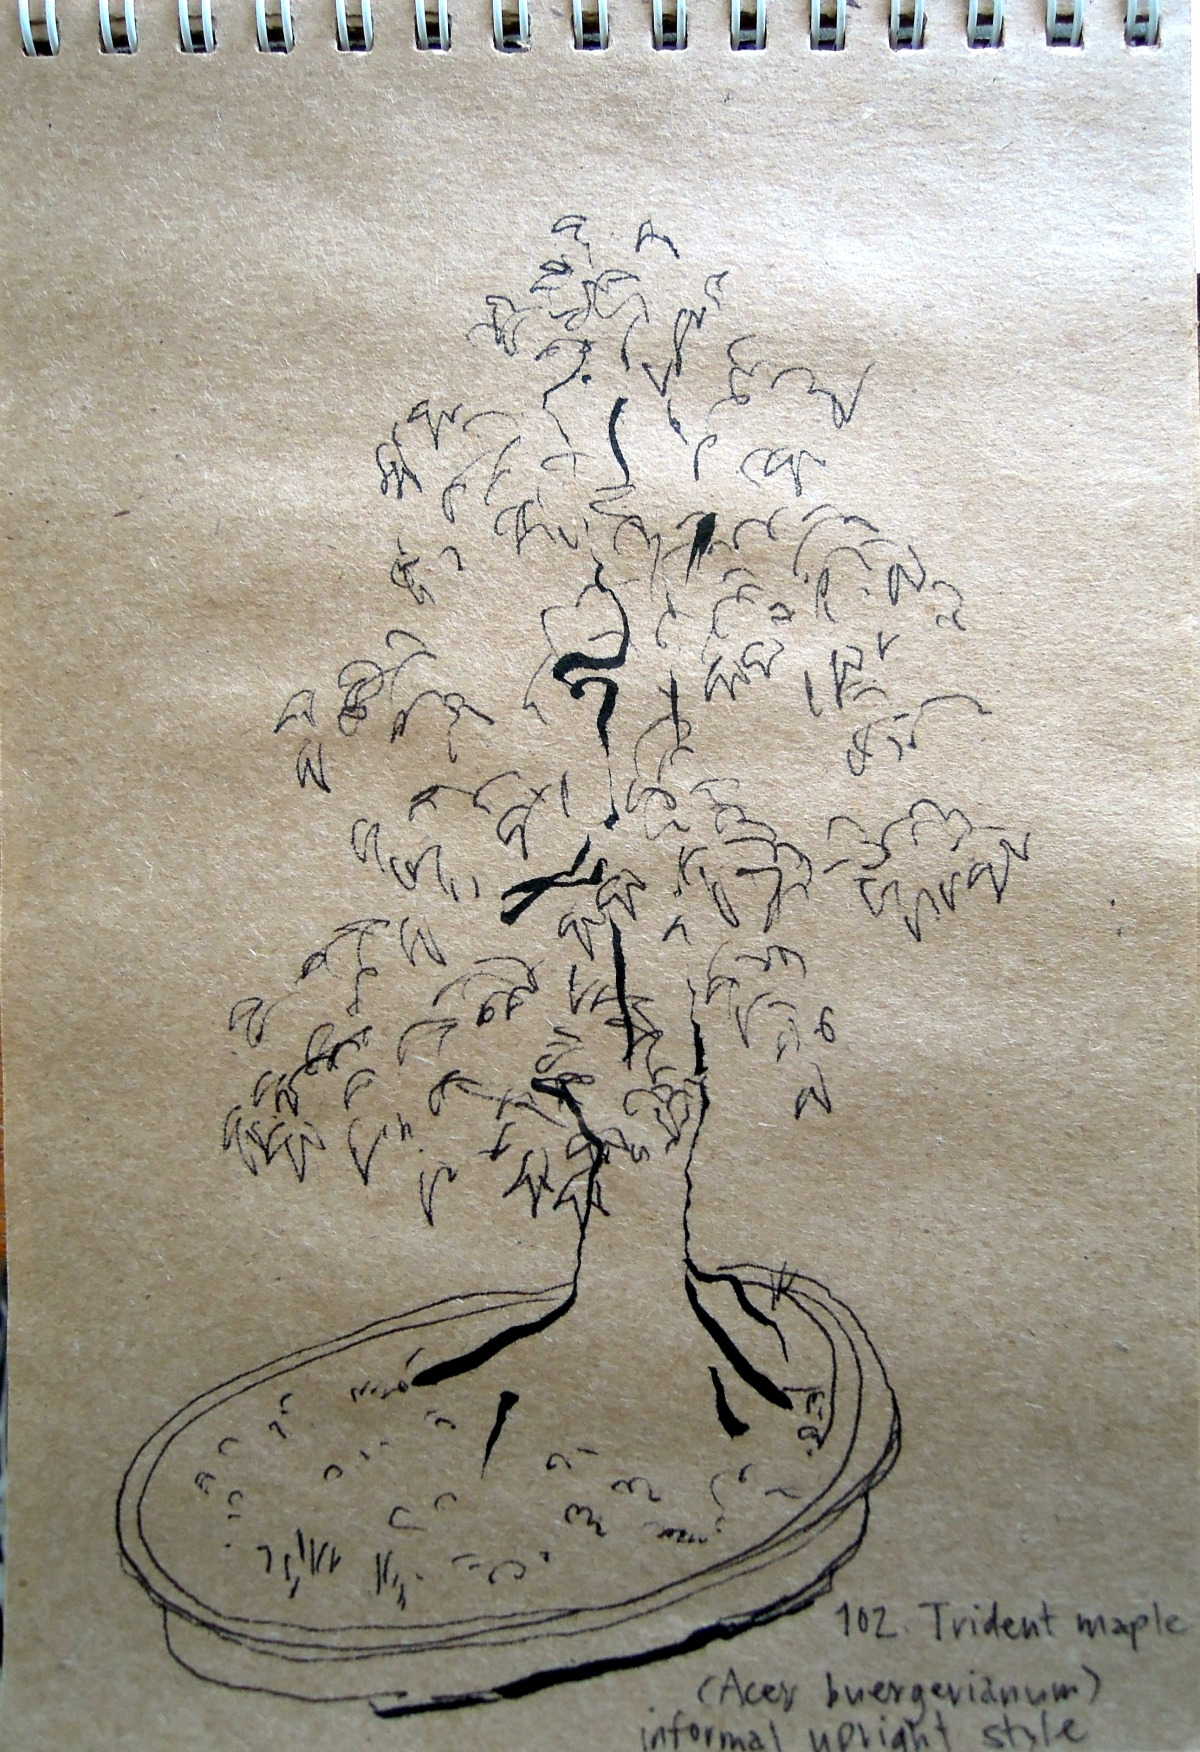 Sketch of trident maple at the Bonsai Garden at Lake Merritt, Oakland